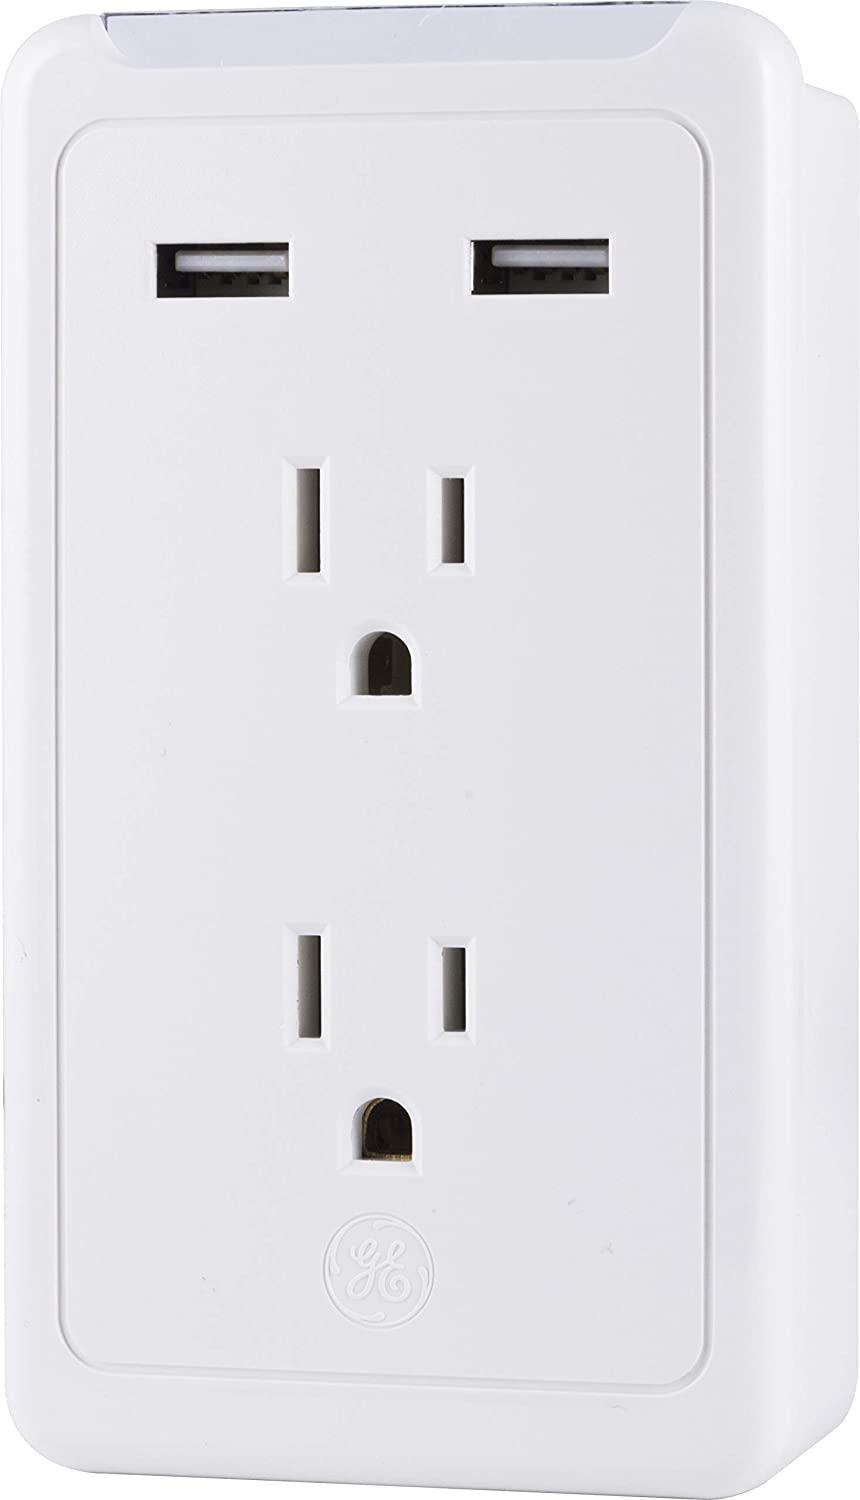 GE 2-Outlet 2 USB Port Plug-in Power Adapter, White, 27368